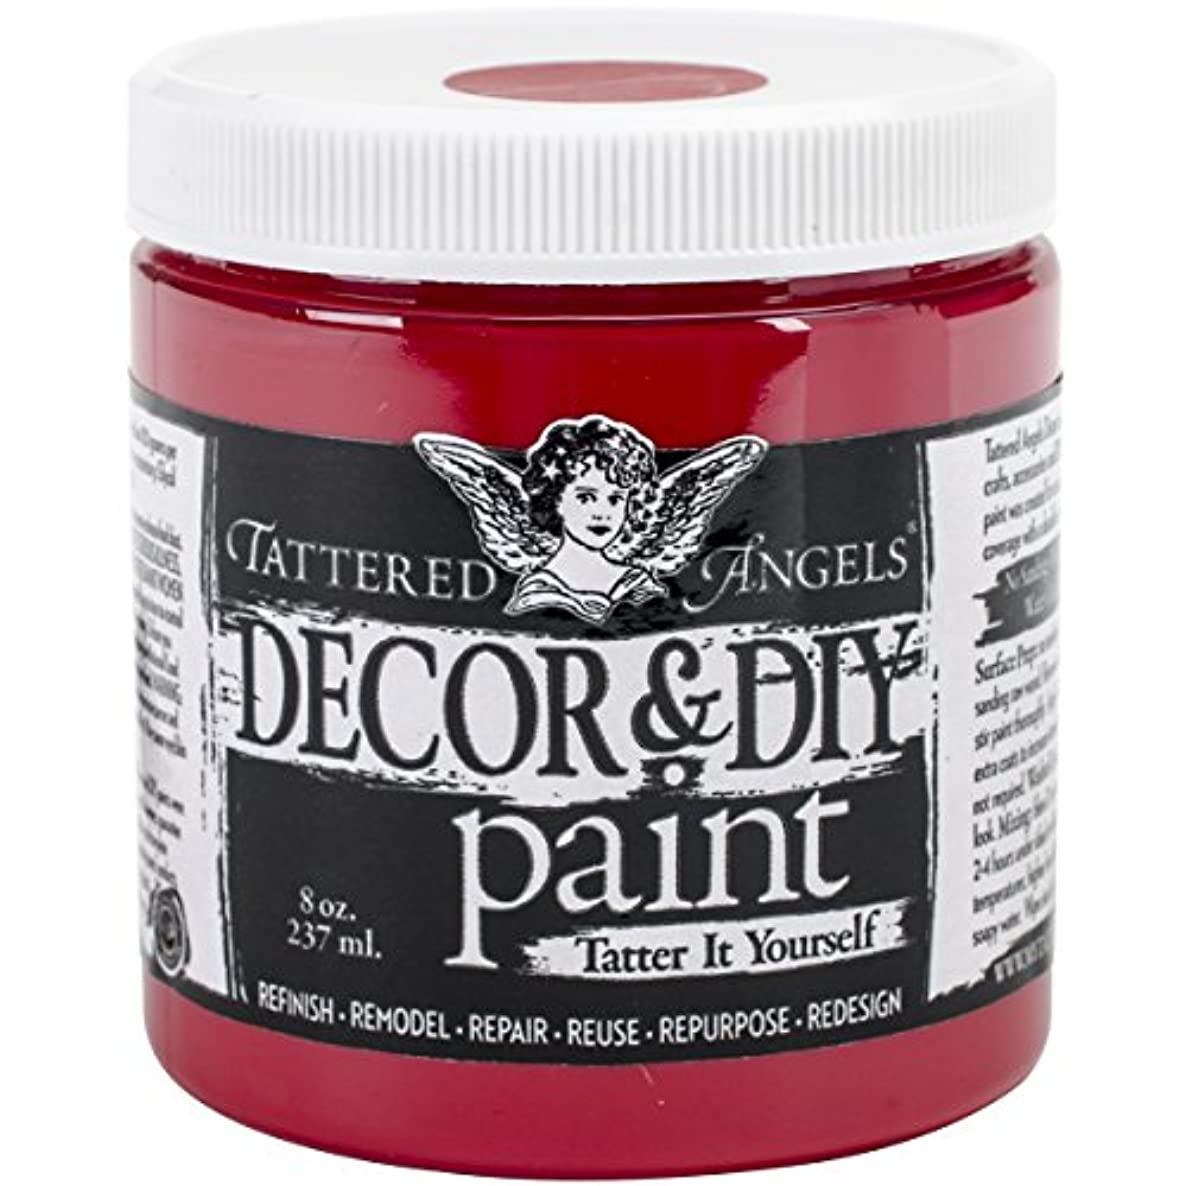 TATTERED ANGELS Decor & DIY Paint Cup, 8 oz, Scarlet